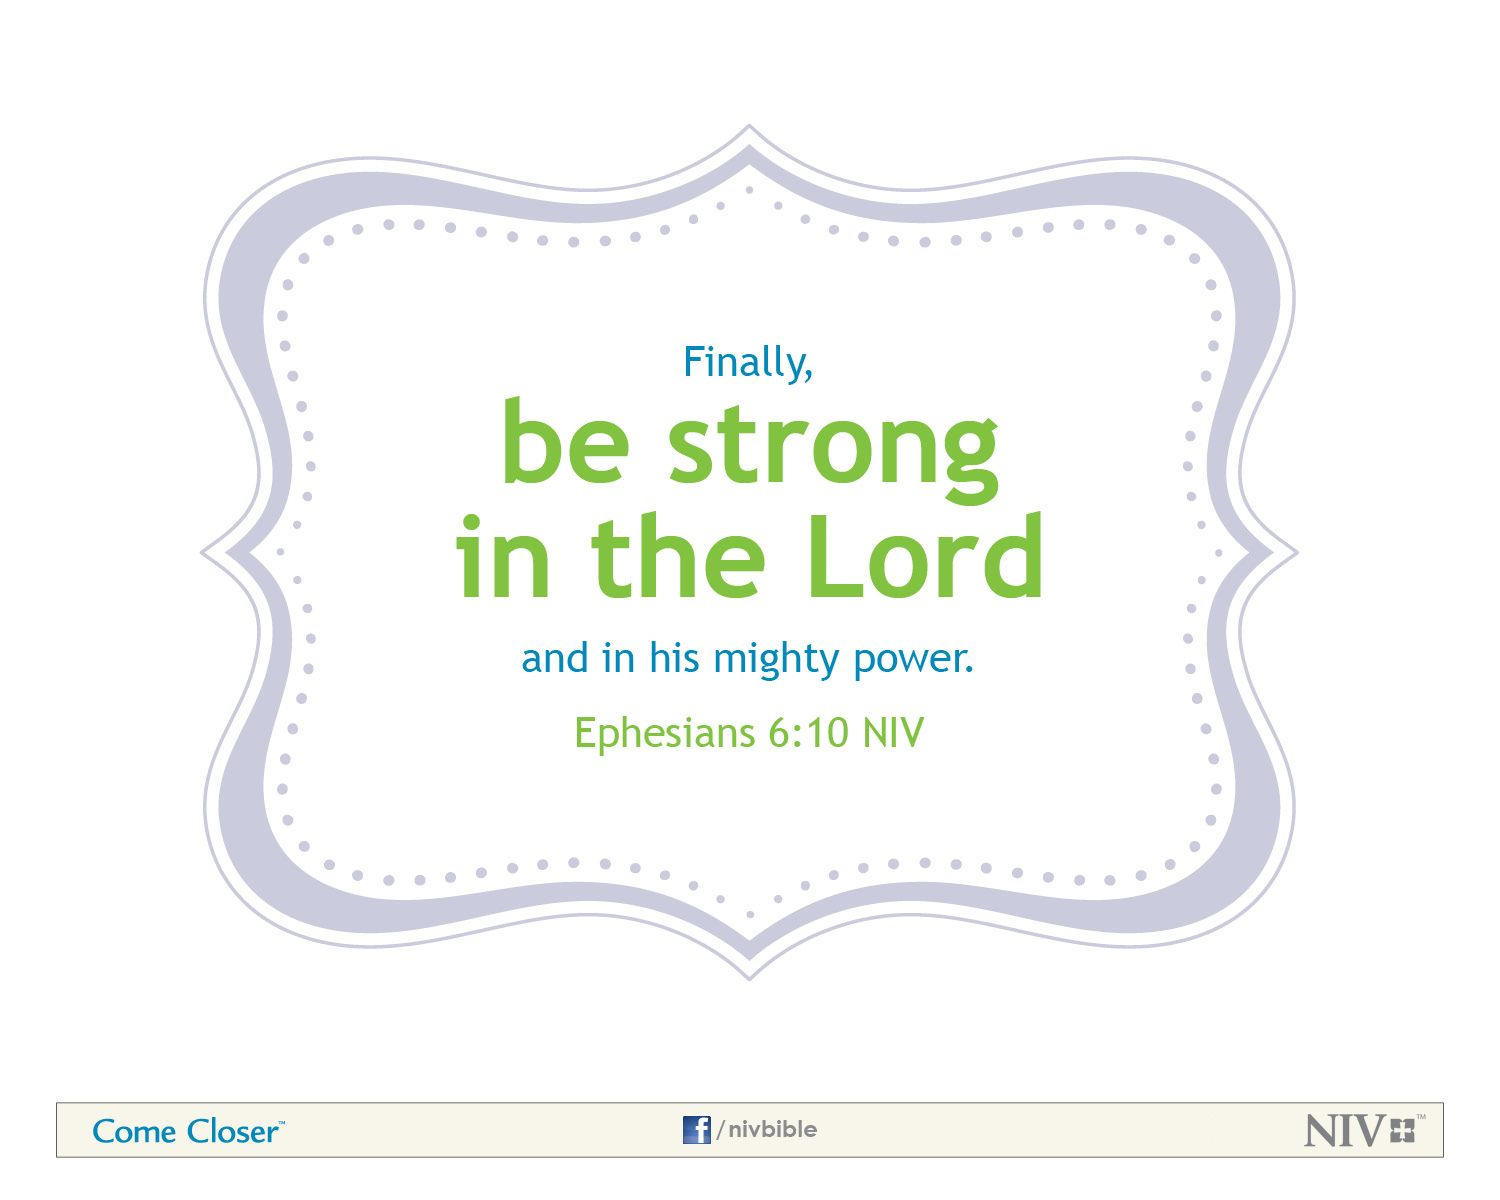 Picture Quote On Ephesianns 210 Niv: Ephesians 6:10 NIV Bible Verse About Courage #NIVBible